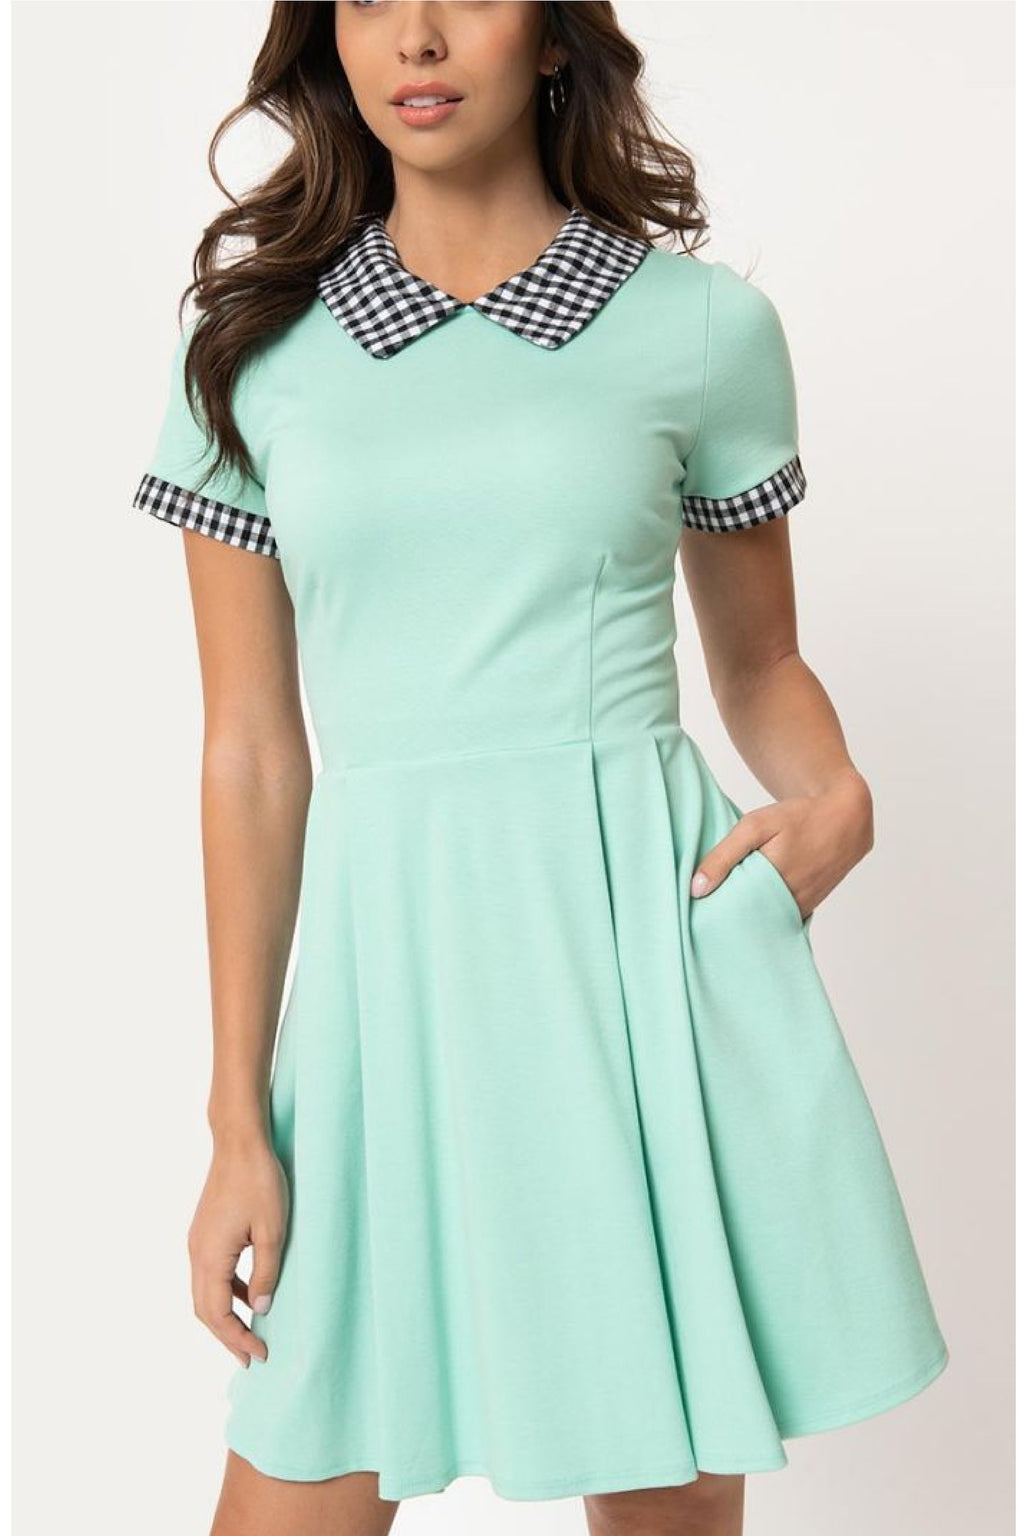 Mint & Black Gingham Babe Revolution Fit & Flare Dress by Smak Parlour